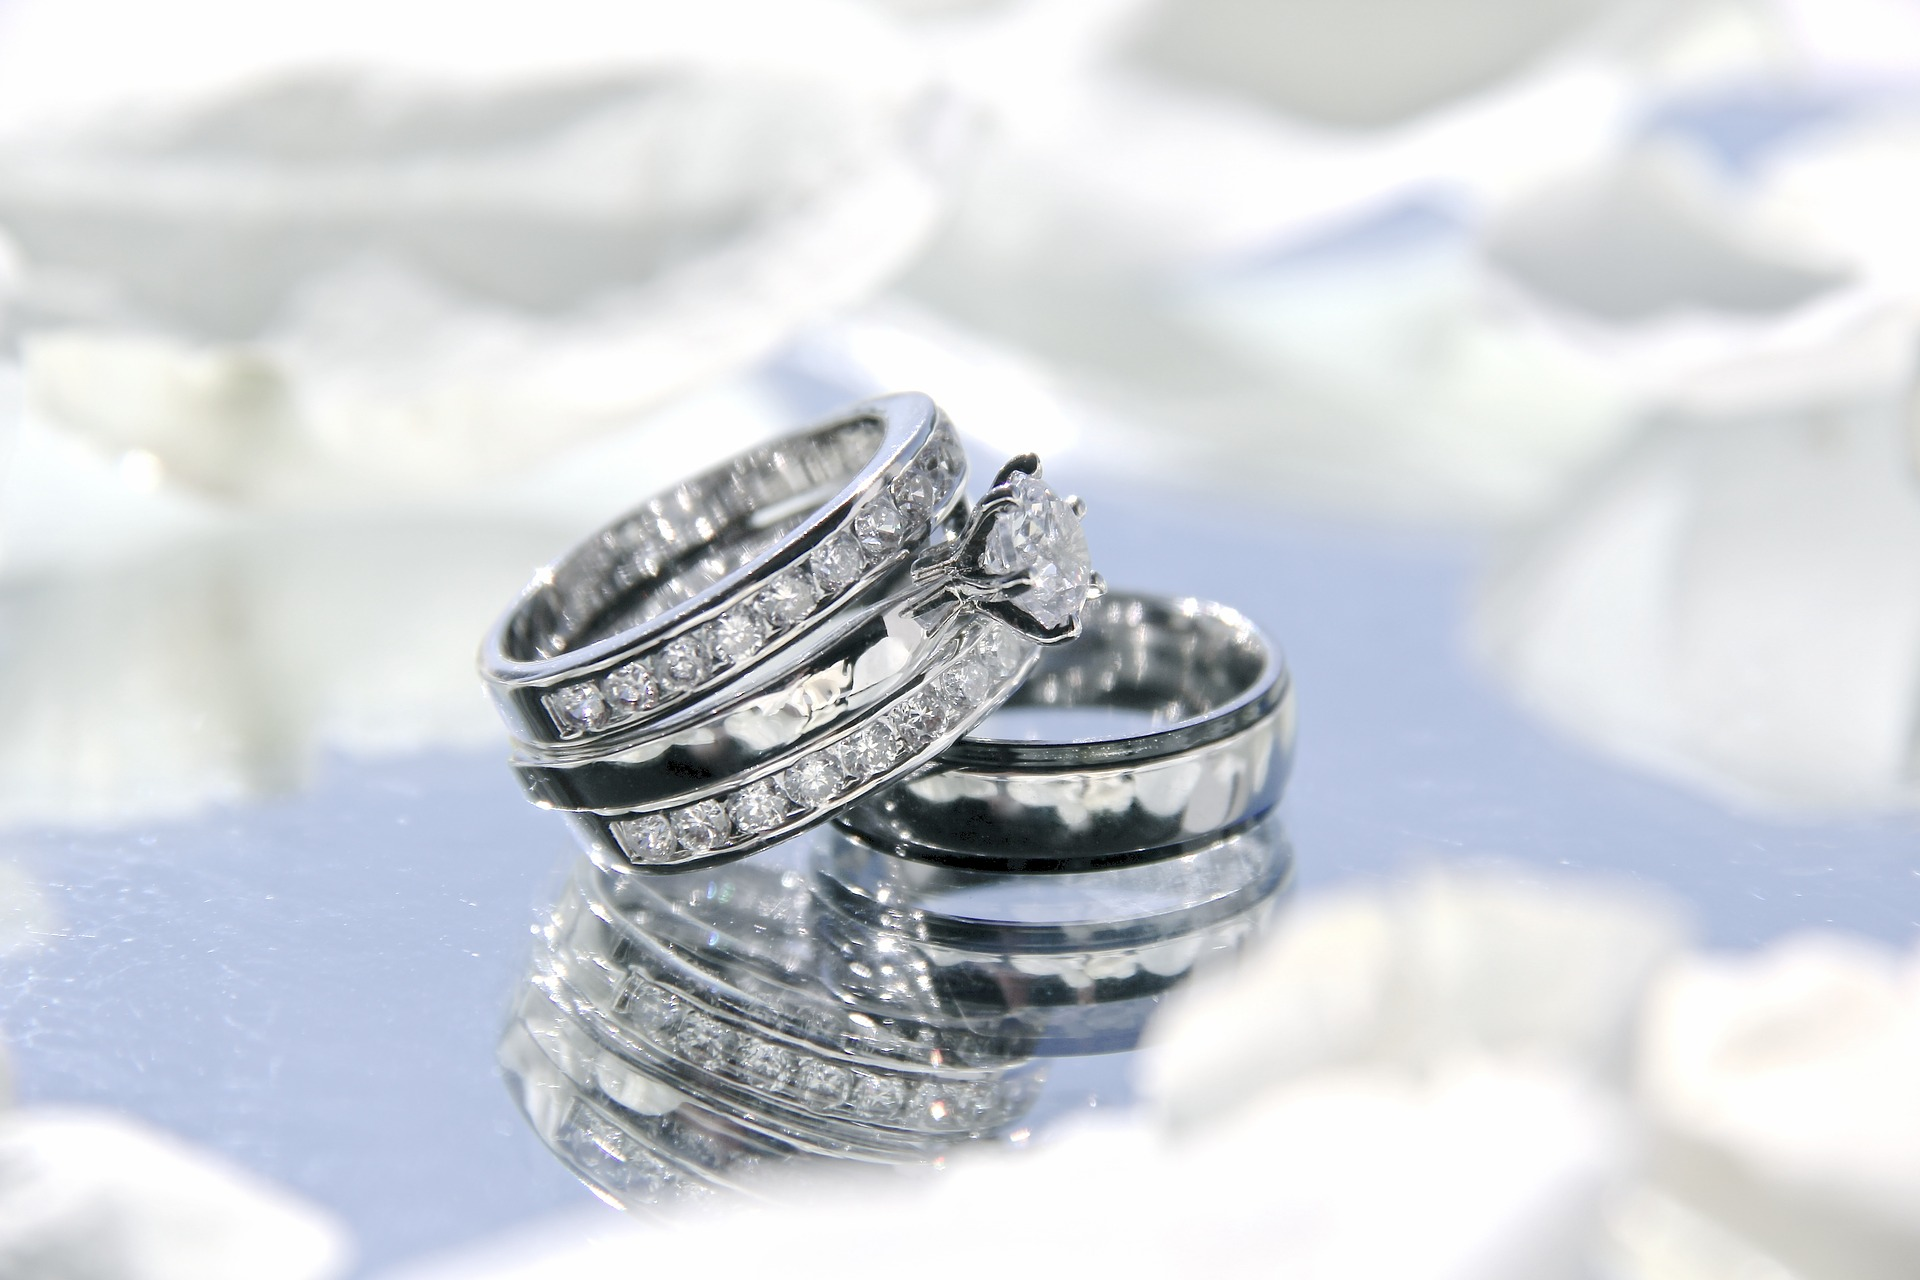 wedding-rings-2364418_1920.jpg